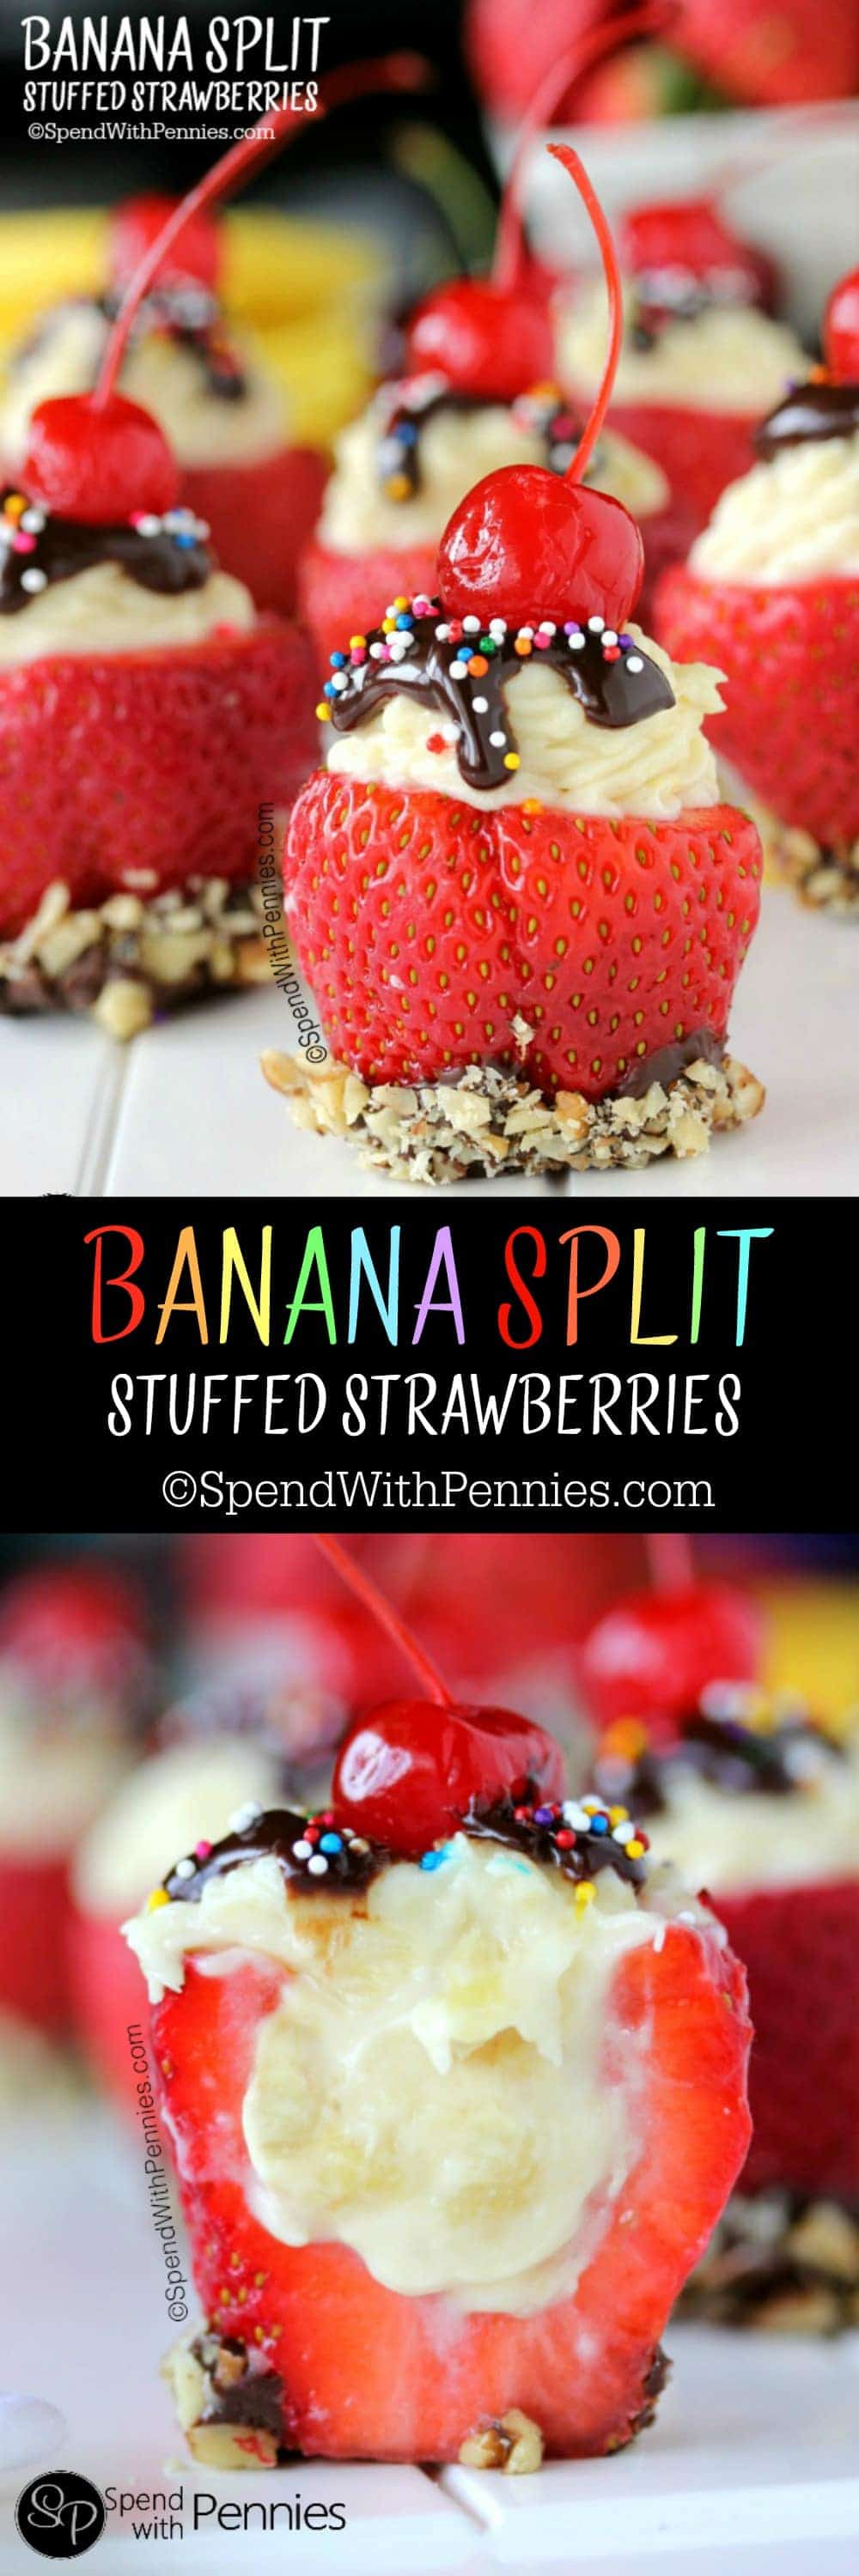 Banana Split Stuffed Strawberries!  These yummy treats are easy to make and perfect for summer!  No baking required! <3